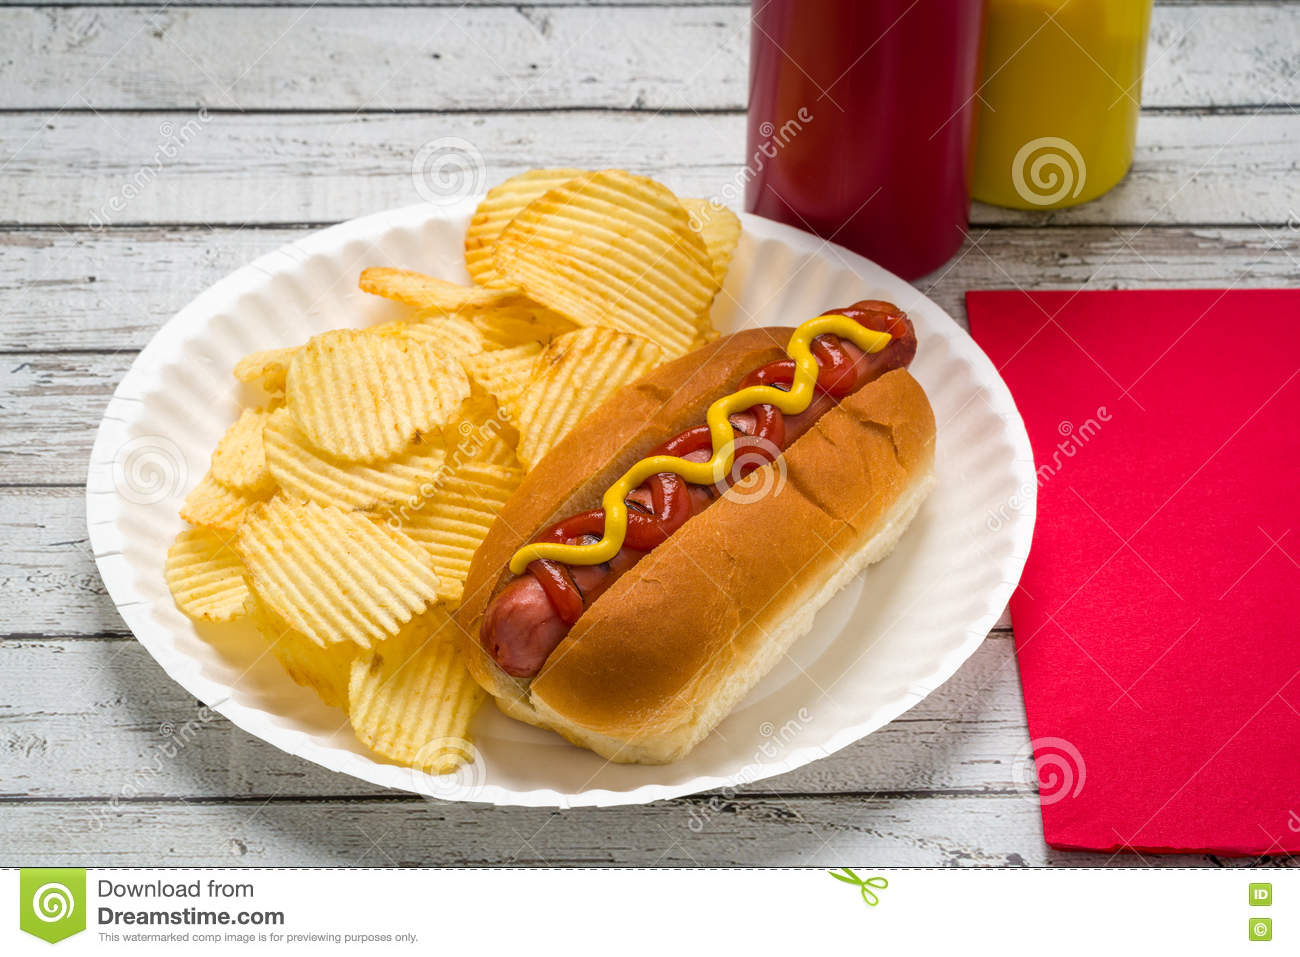 Best Picnic Food For Hot Weather